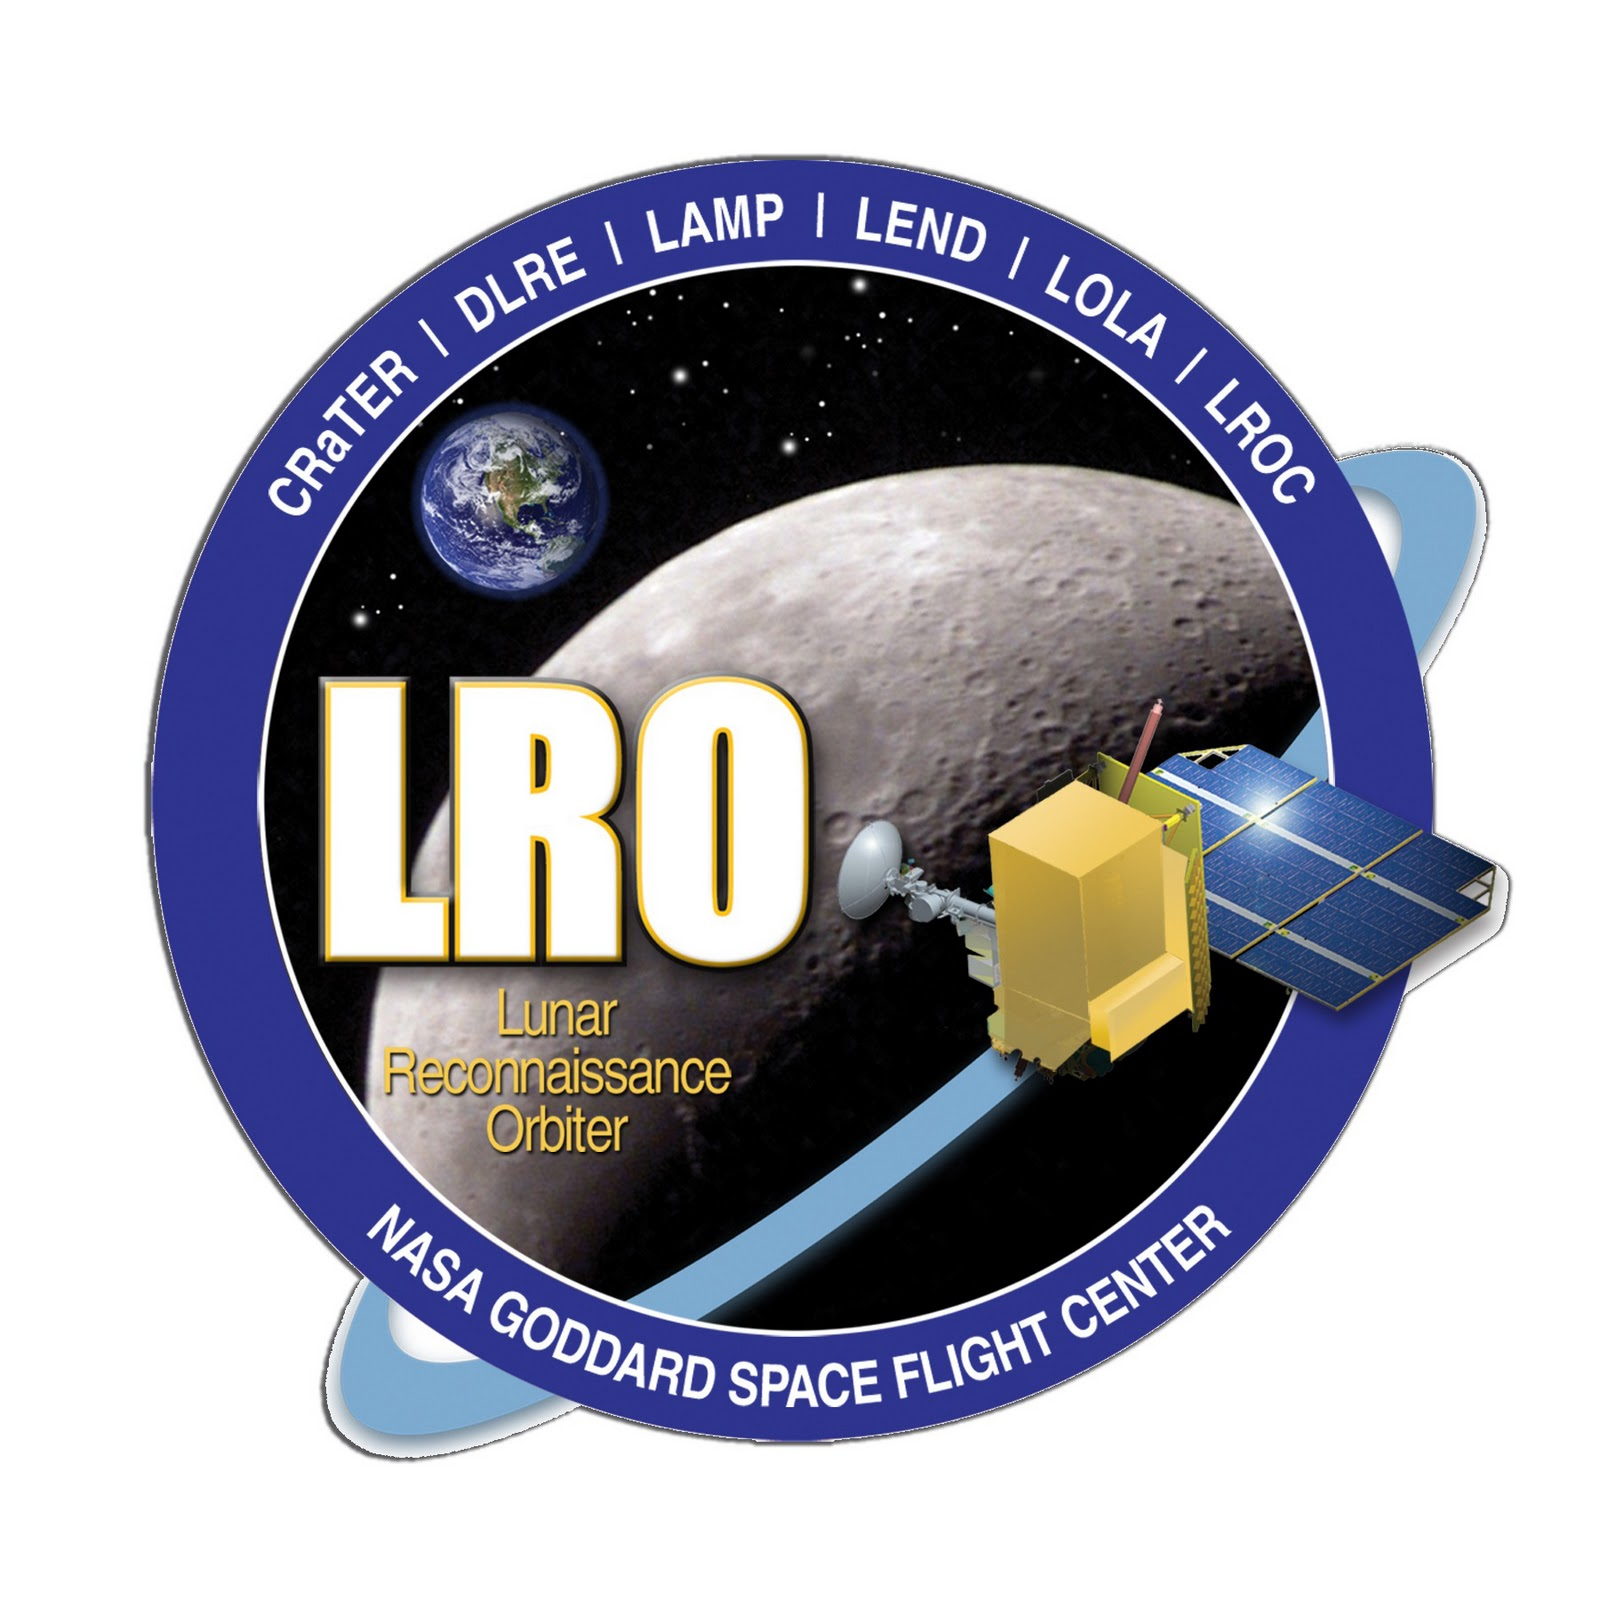 Apollo ll module clipart transparent background.